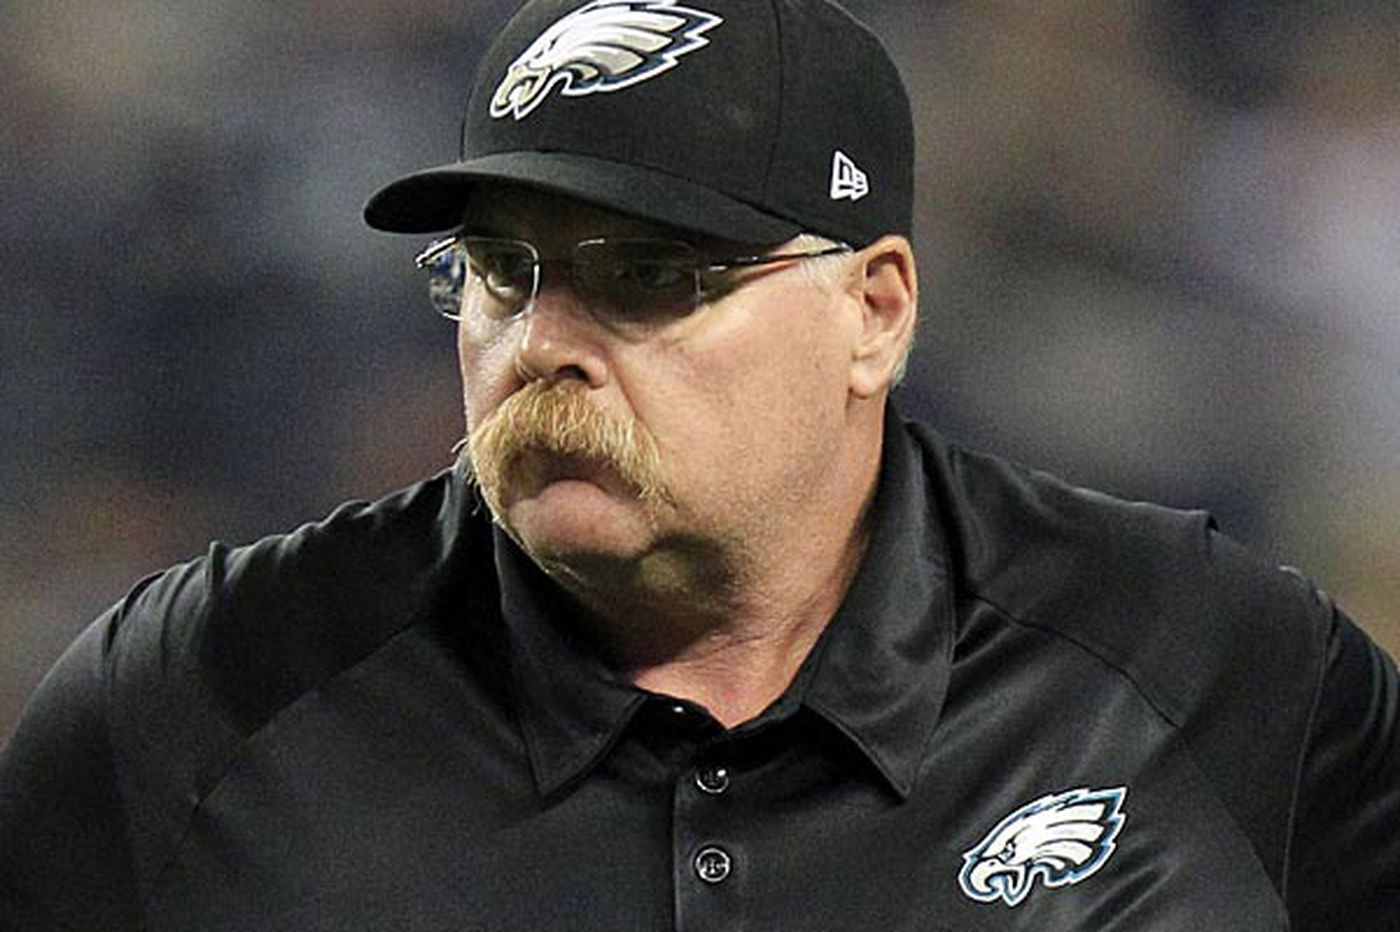 Eagles season continues to spiral hopelessly out of control